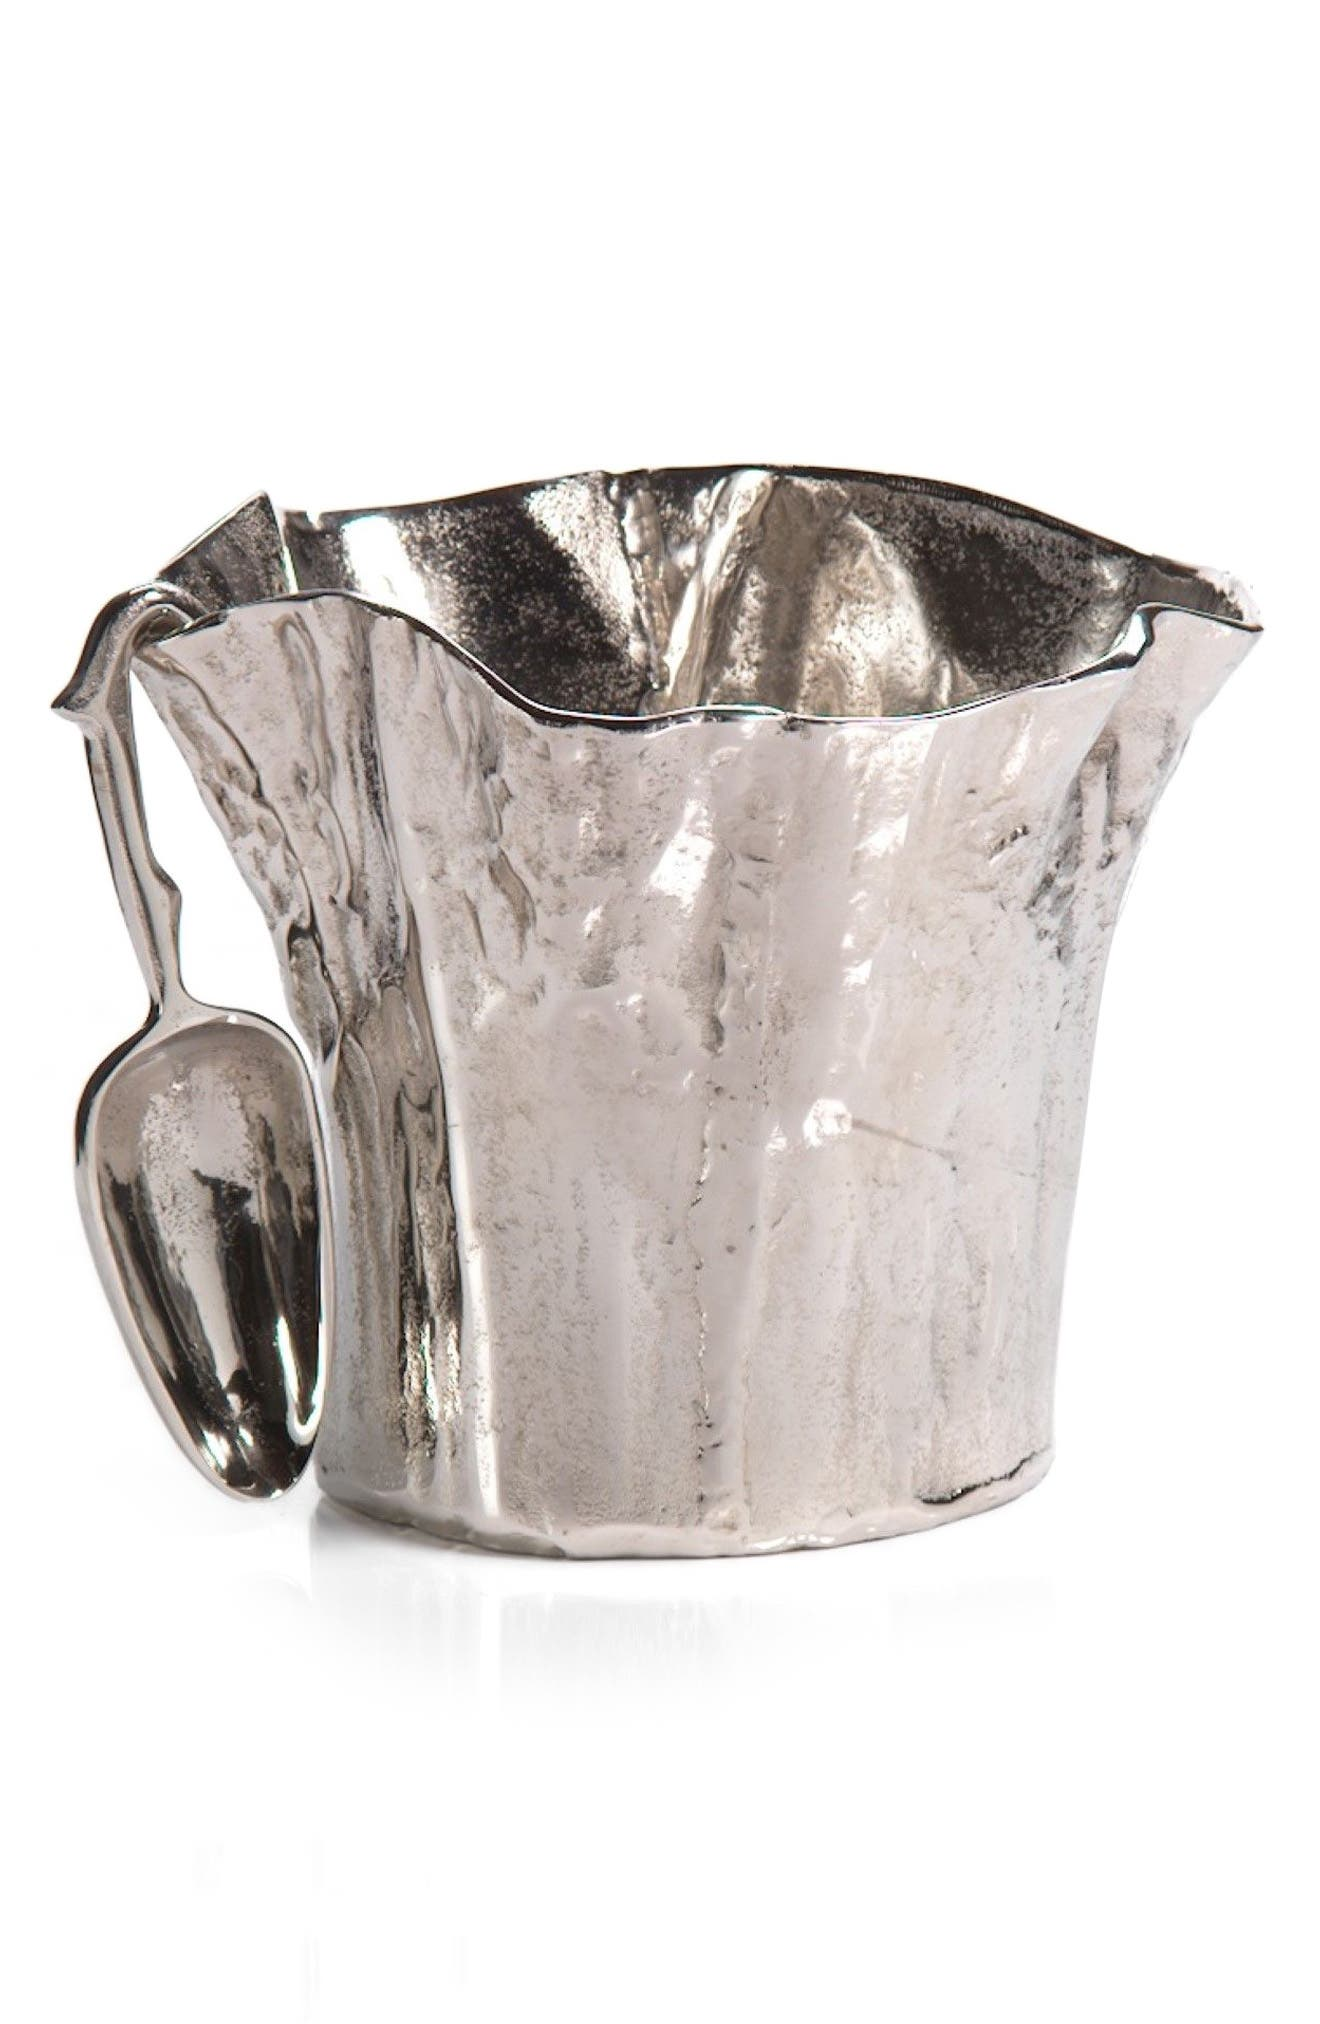 Alternate Image 1 Selected - Zodax Cado Ice Bucket & Ice Scoop